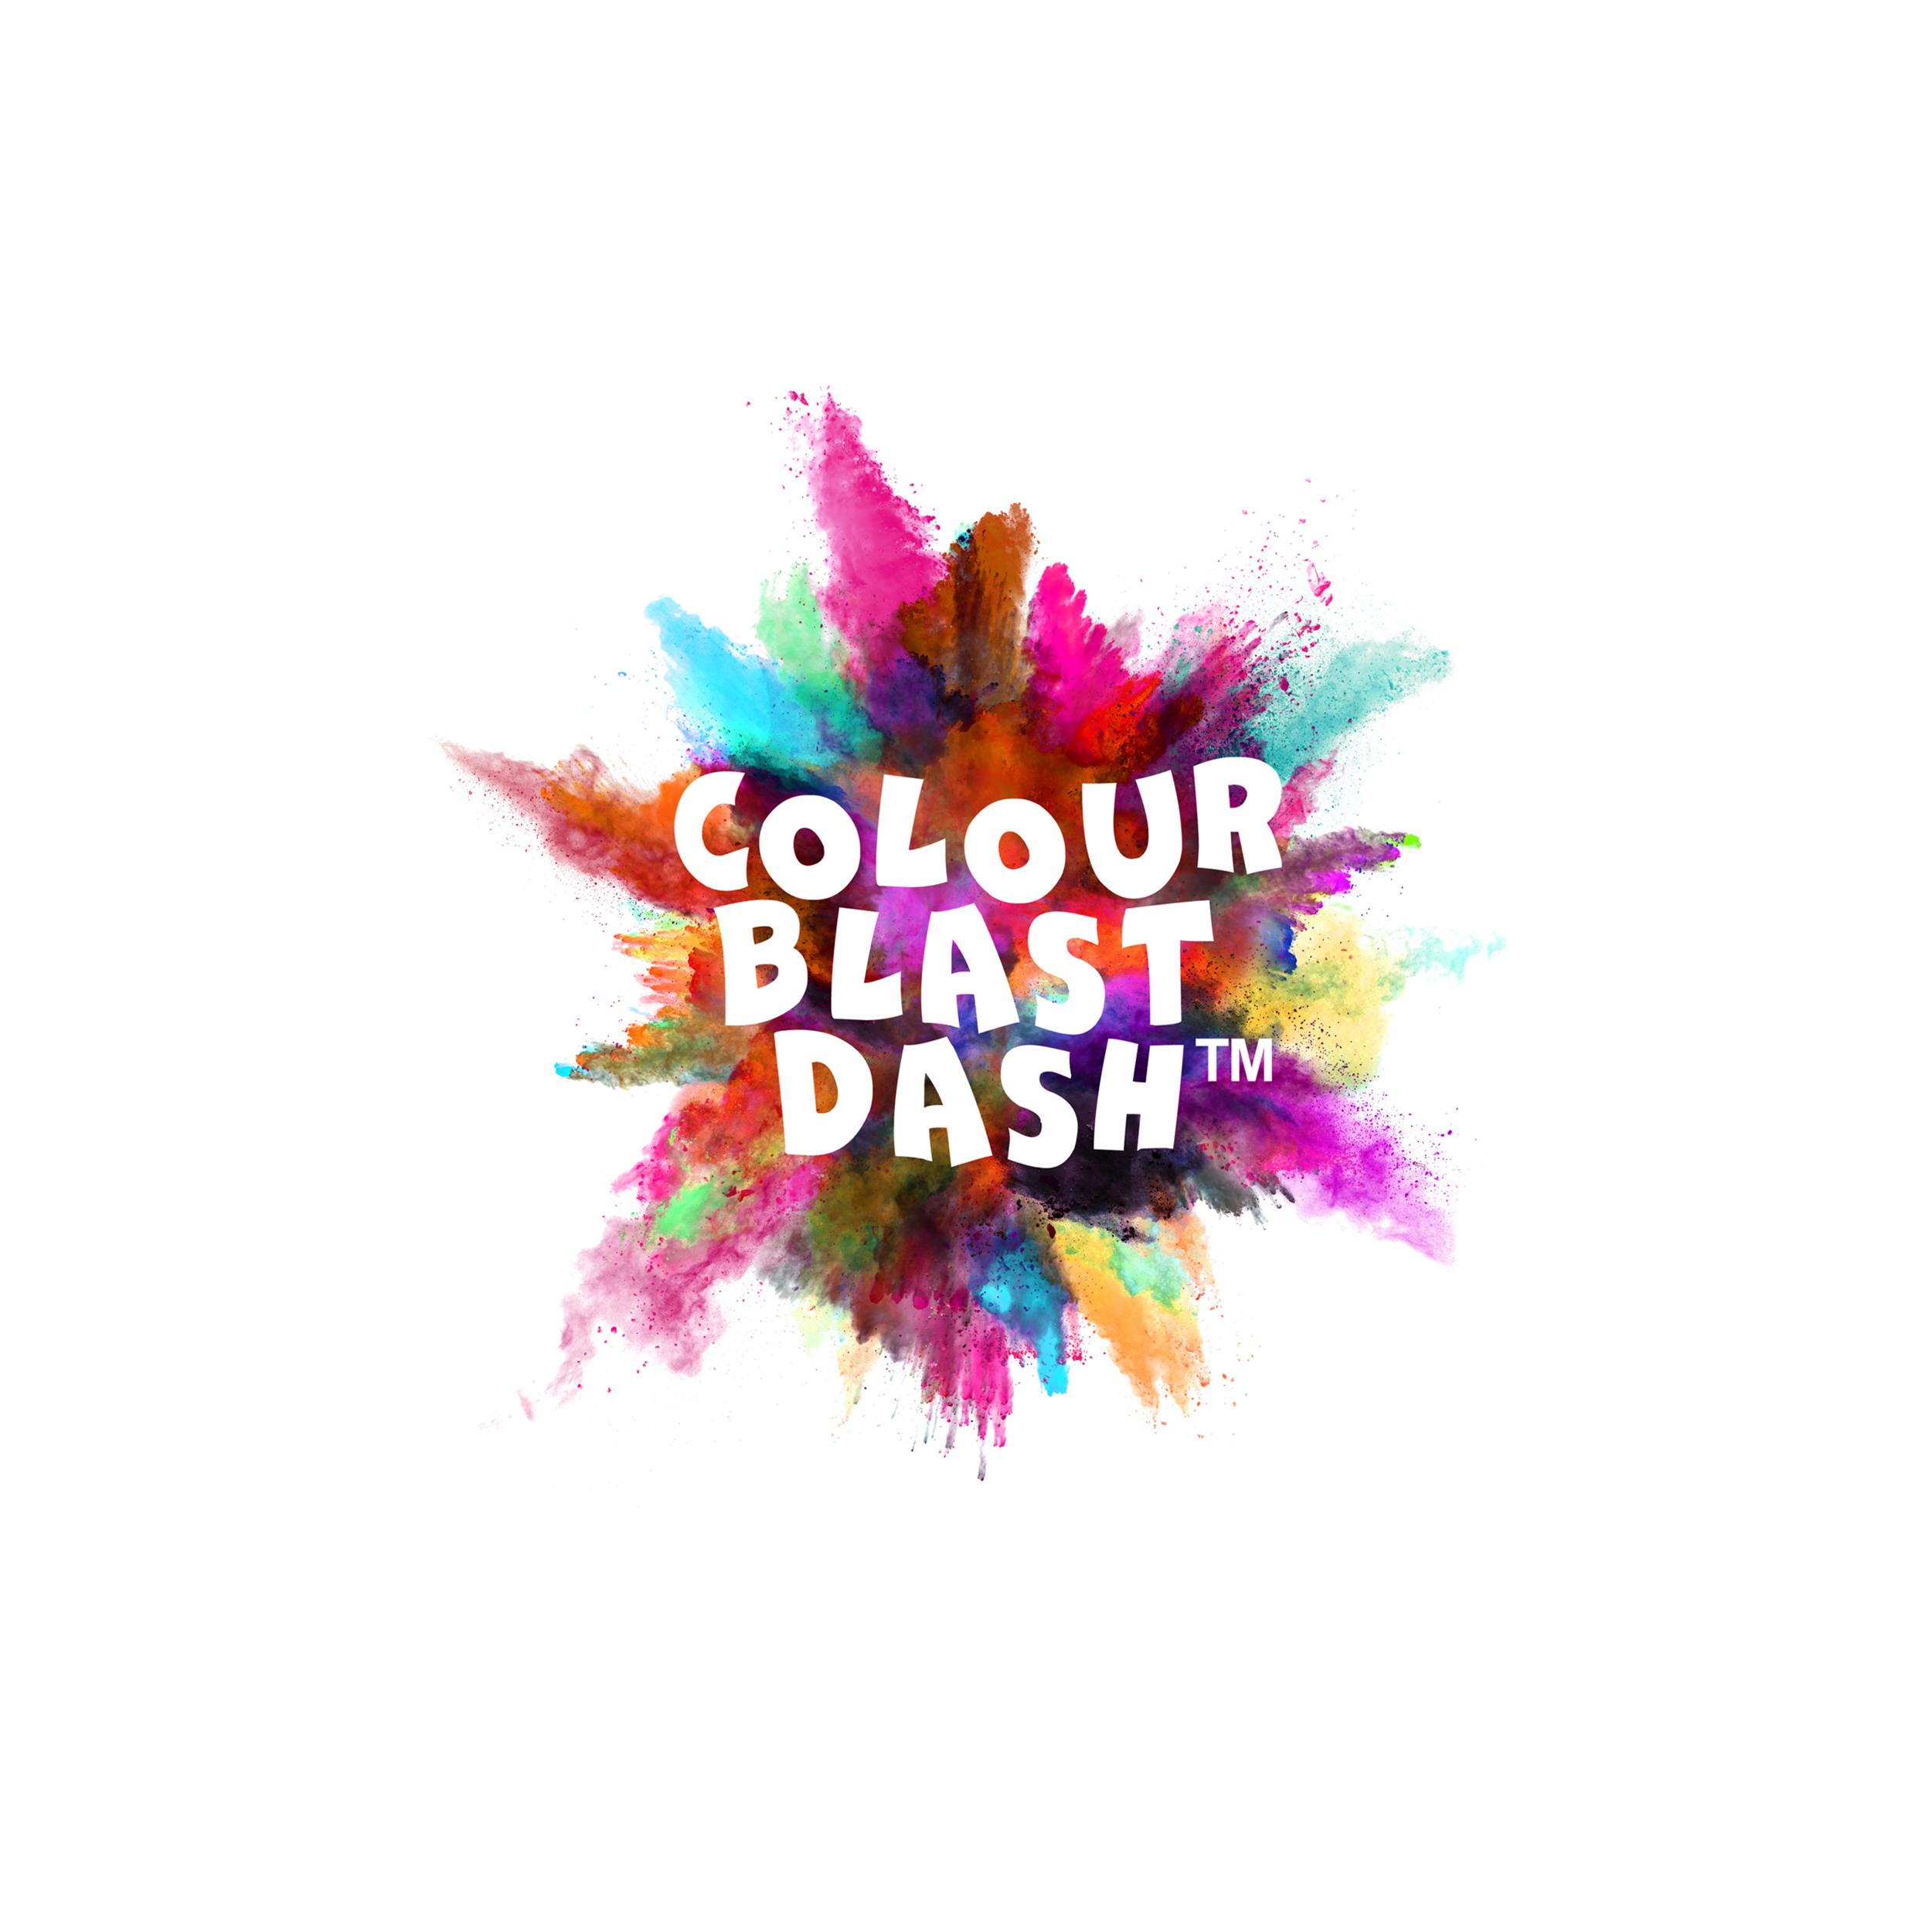 REAL CBD BLAST OF COLOUR LOGO 4 copy.png